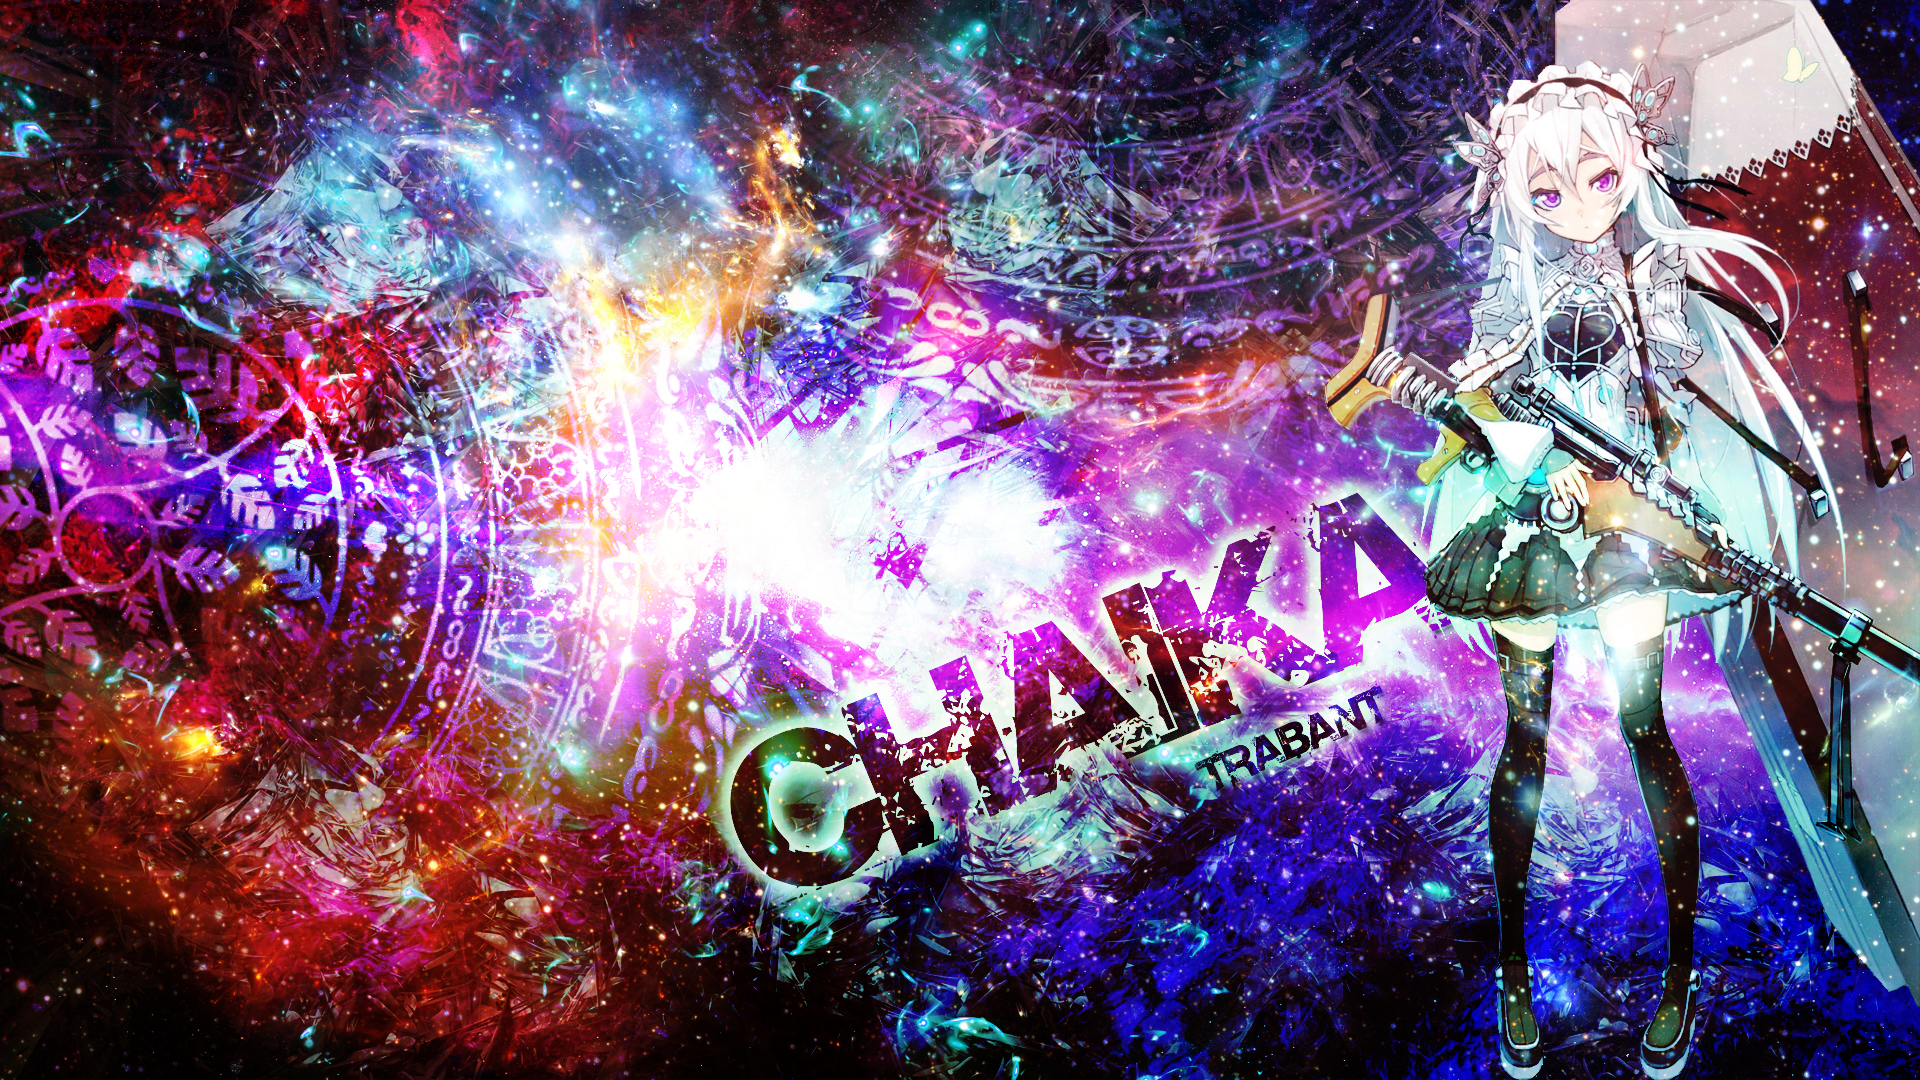 Chaika -The Coffin Princess- Wallpapers, Pictures, Images